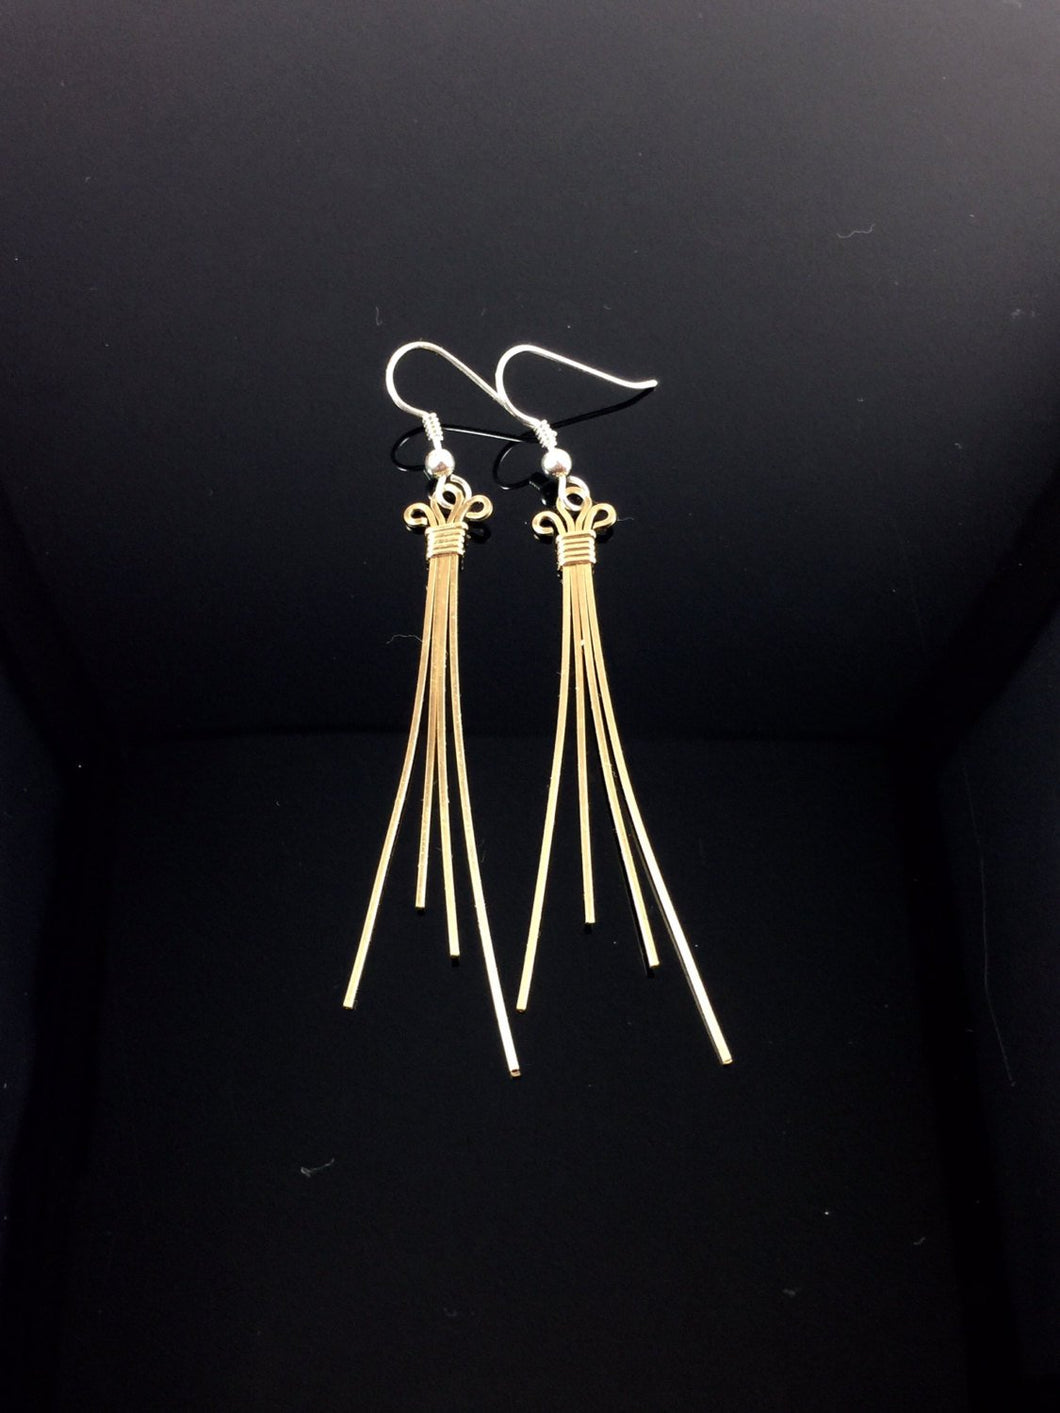 Gold Earrings Wire Wrapped Jewelry Drop Dangle Wire Earrings Hand Made Precious Metal Earrings